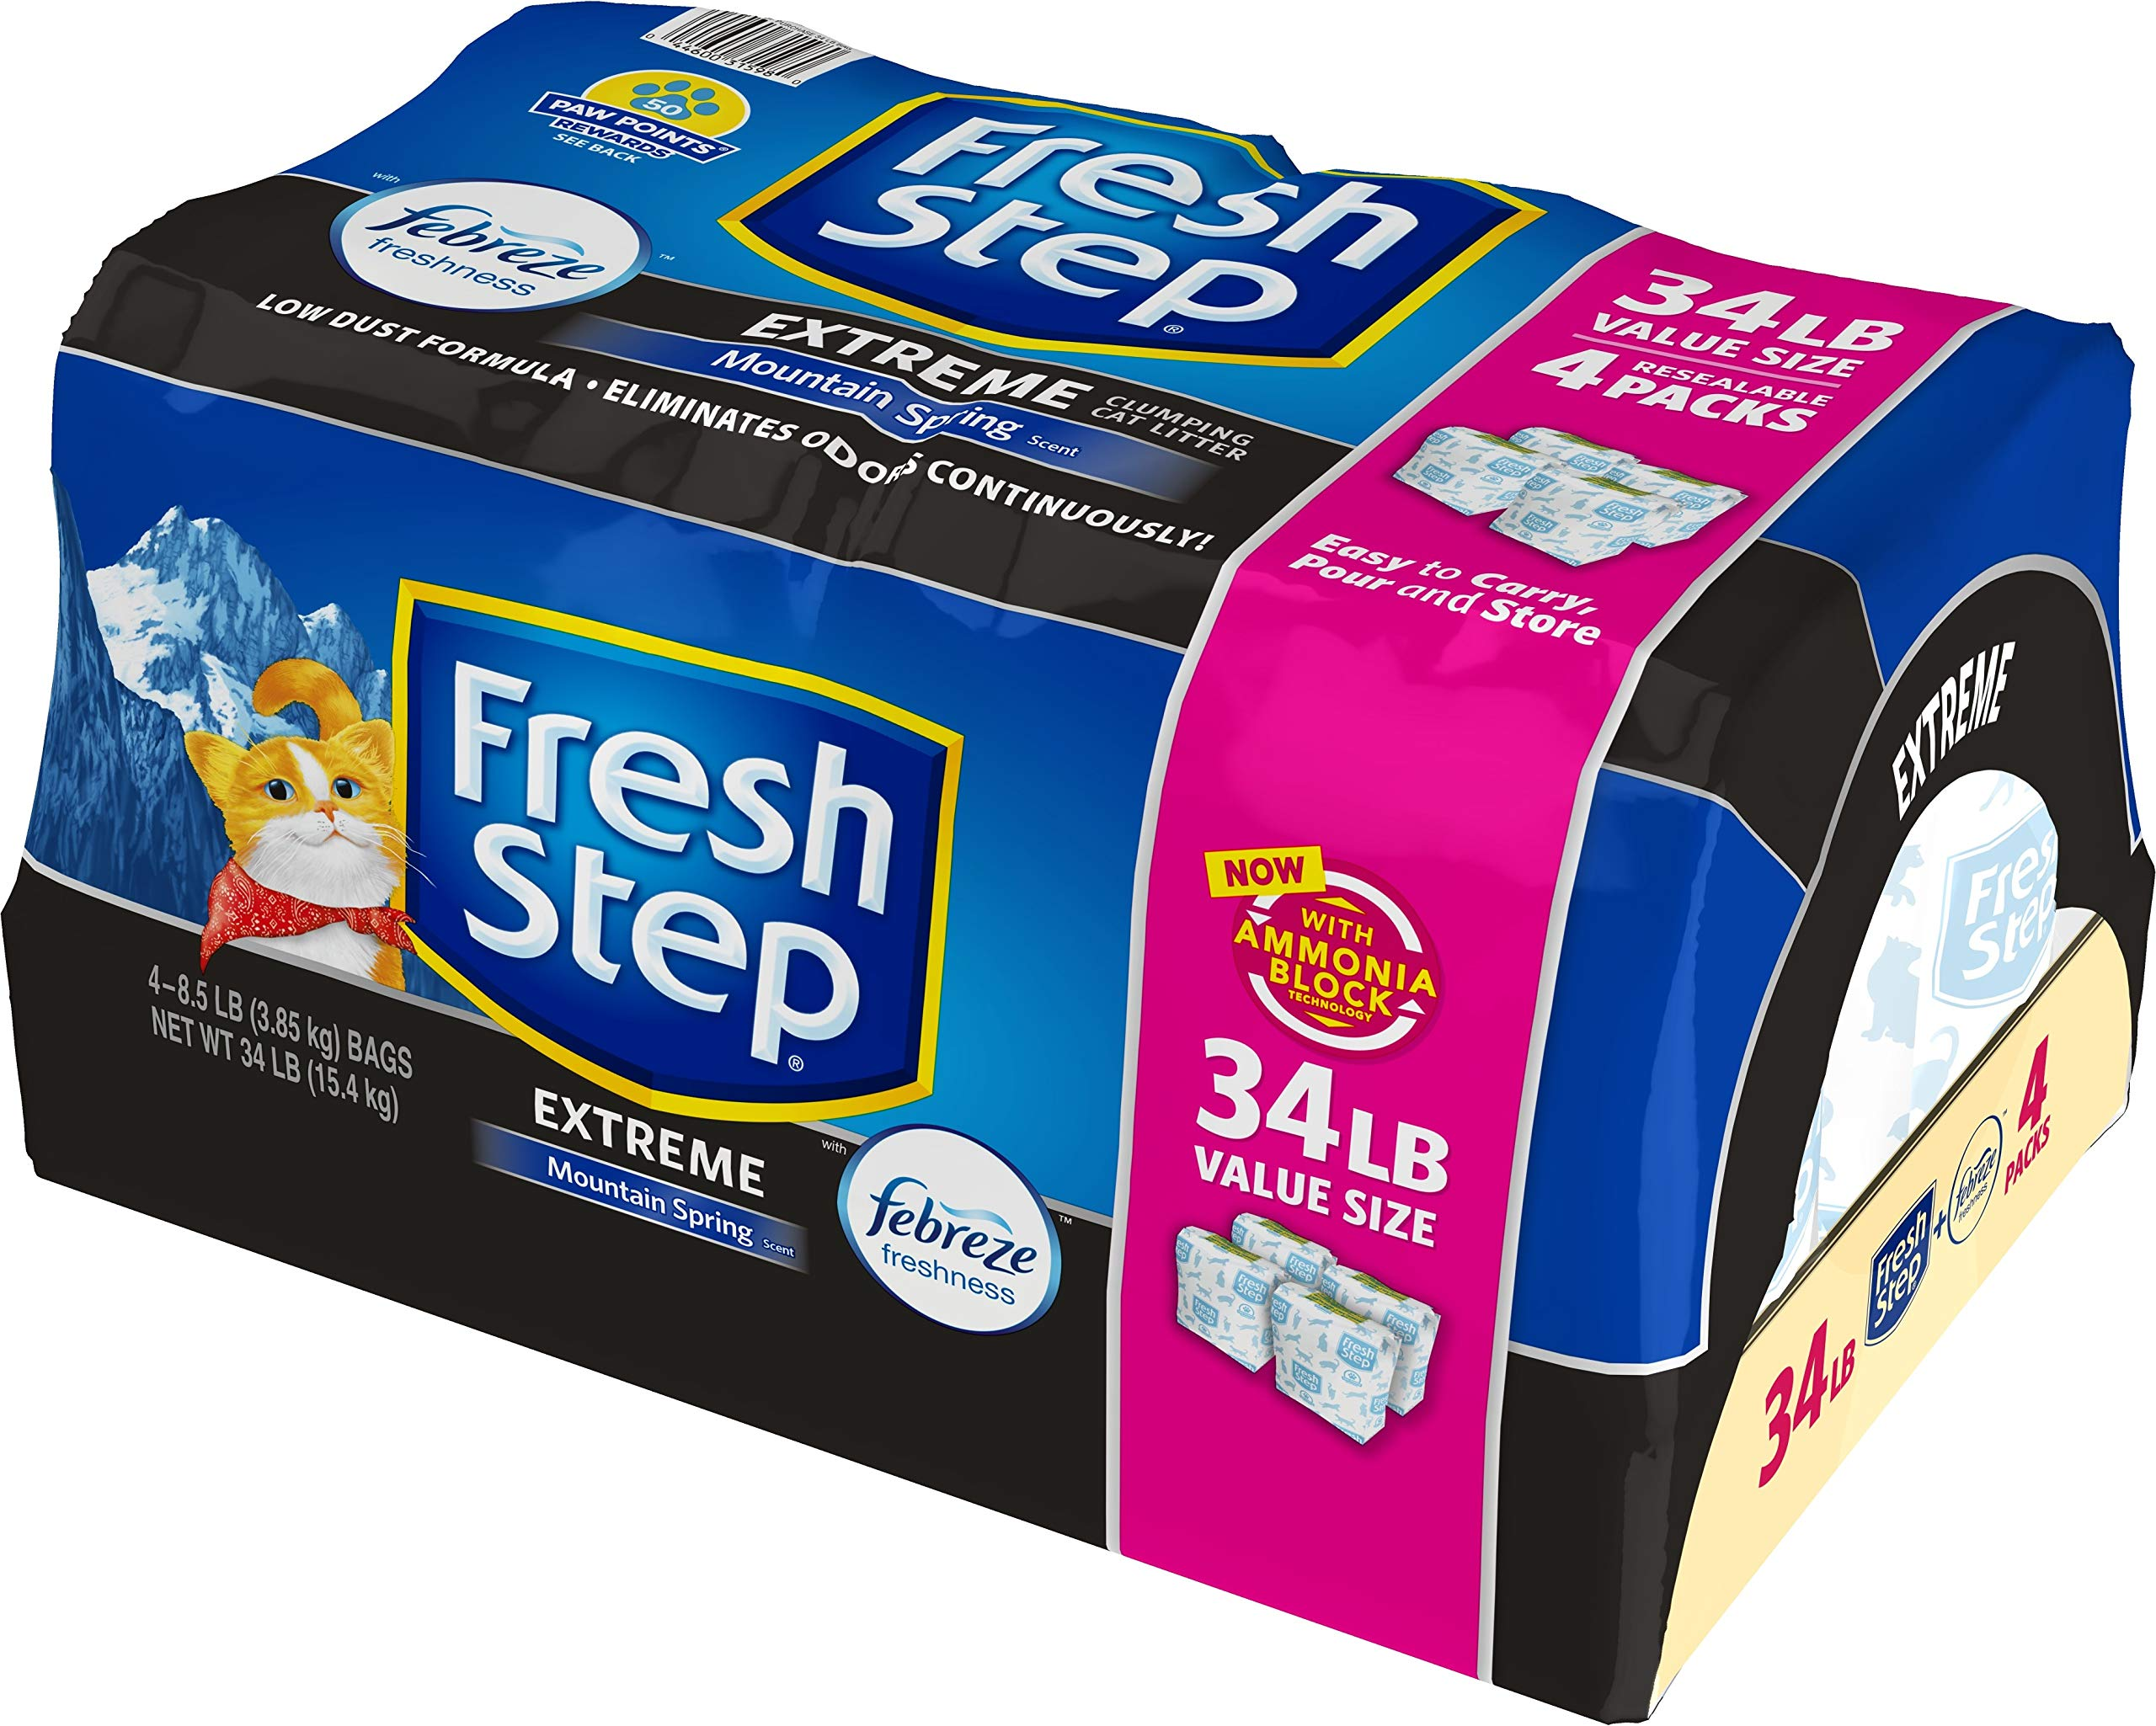 Fresh Step Extreme with Febreze Freshness, Clumping Cat Litter, Scented, 34 Pounds by Fresh Step